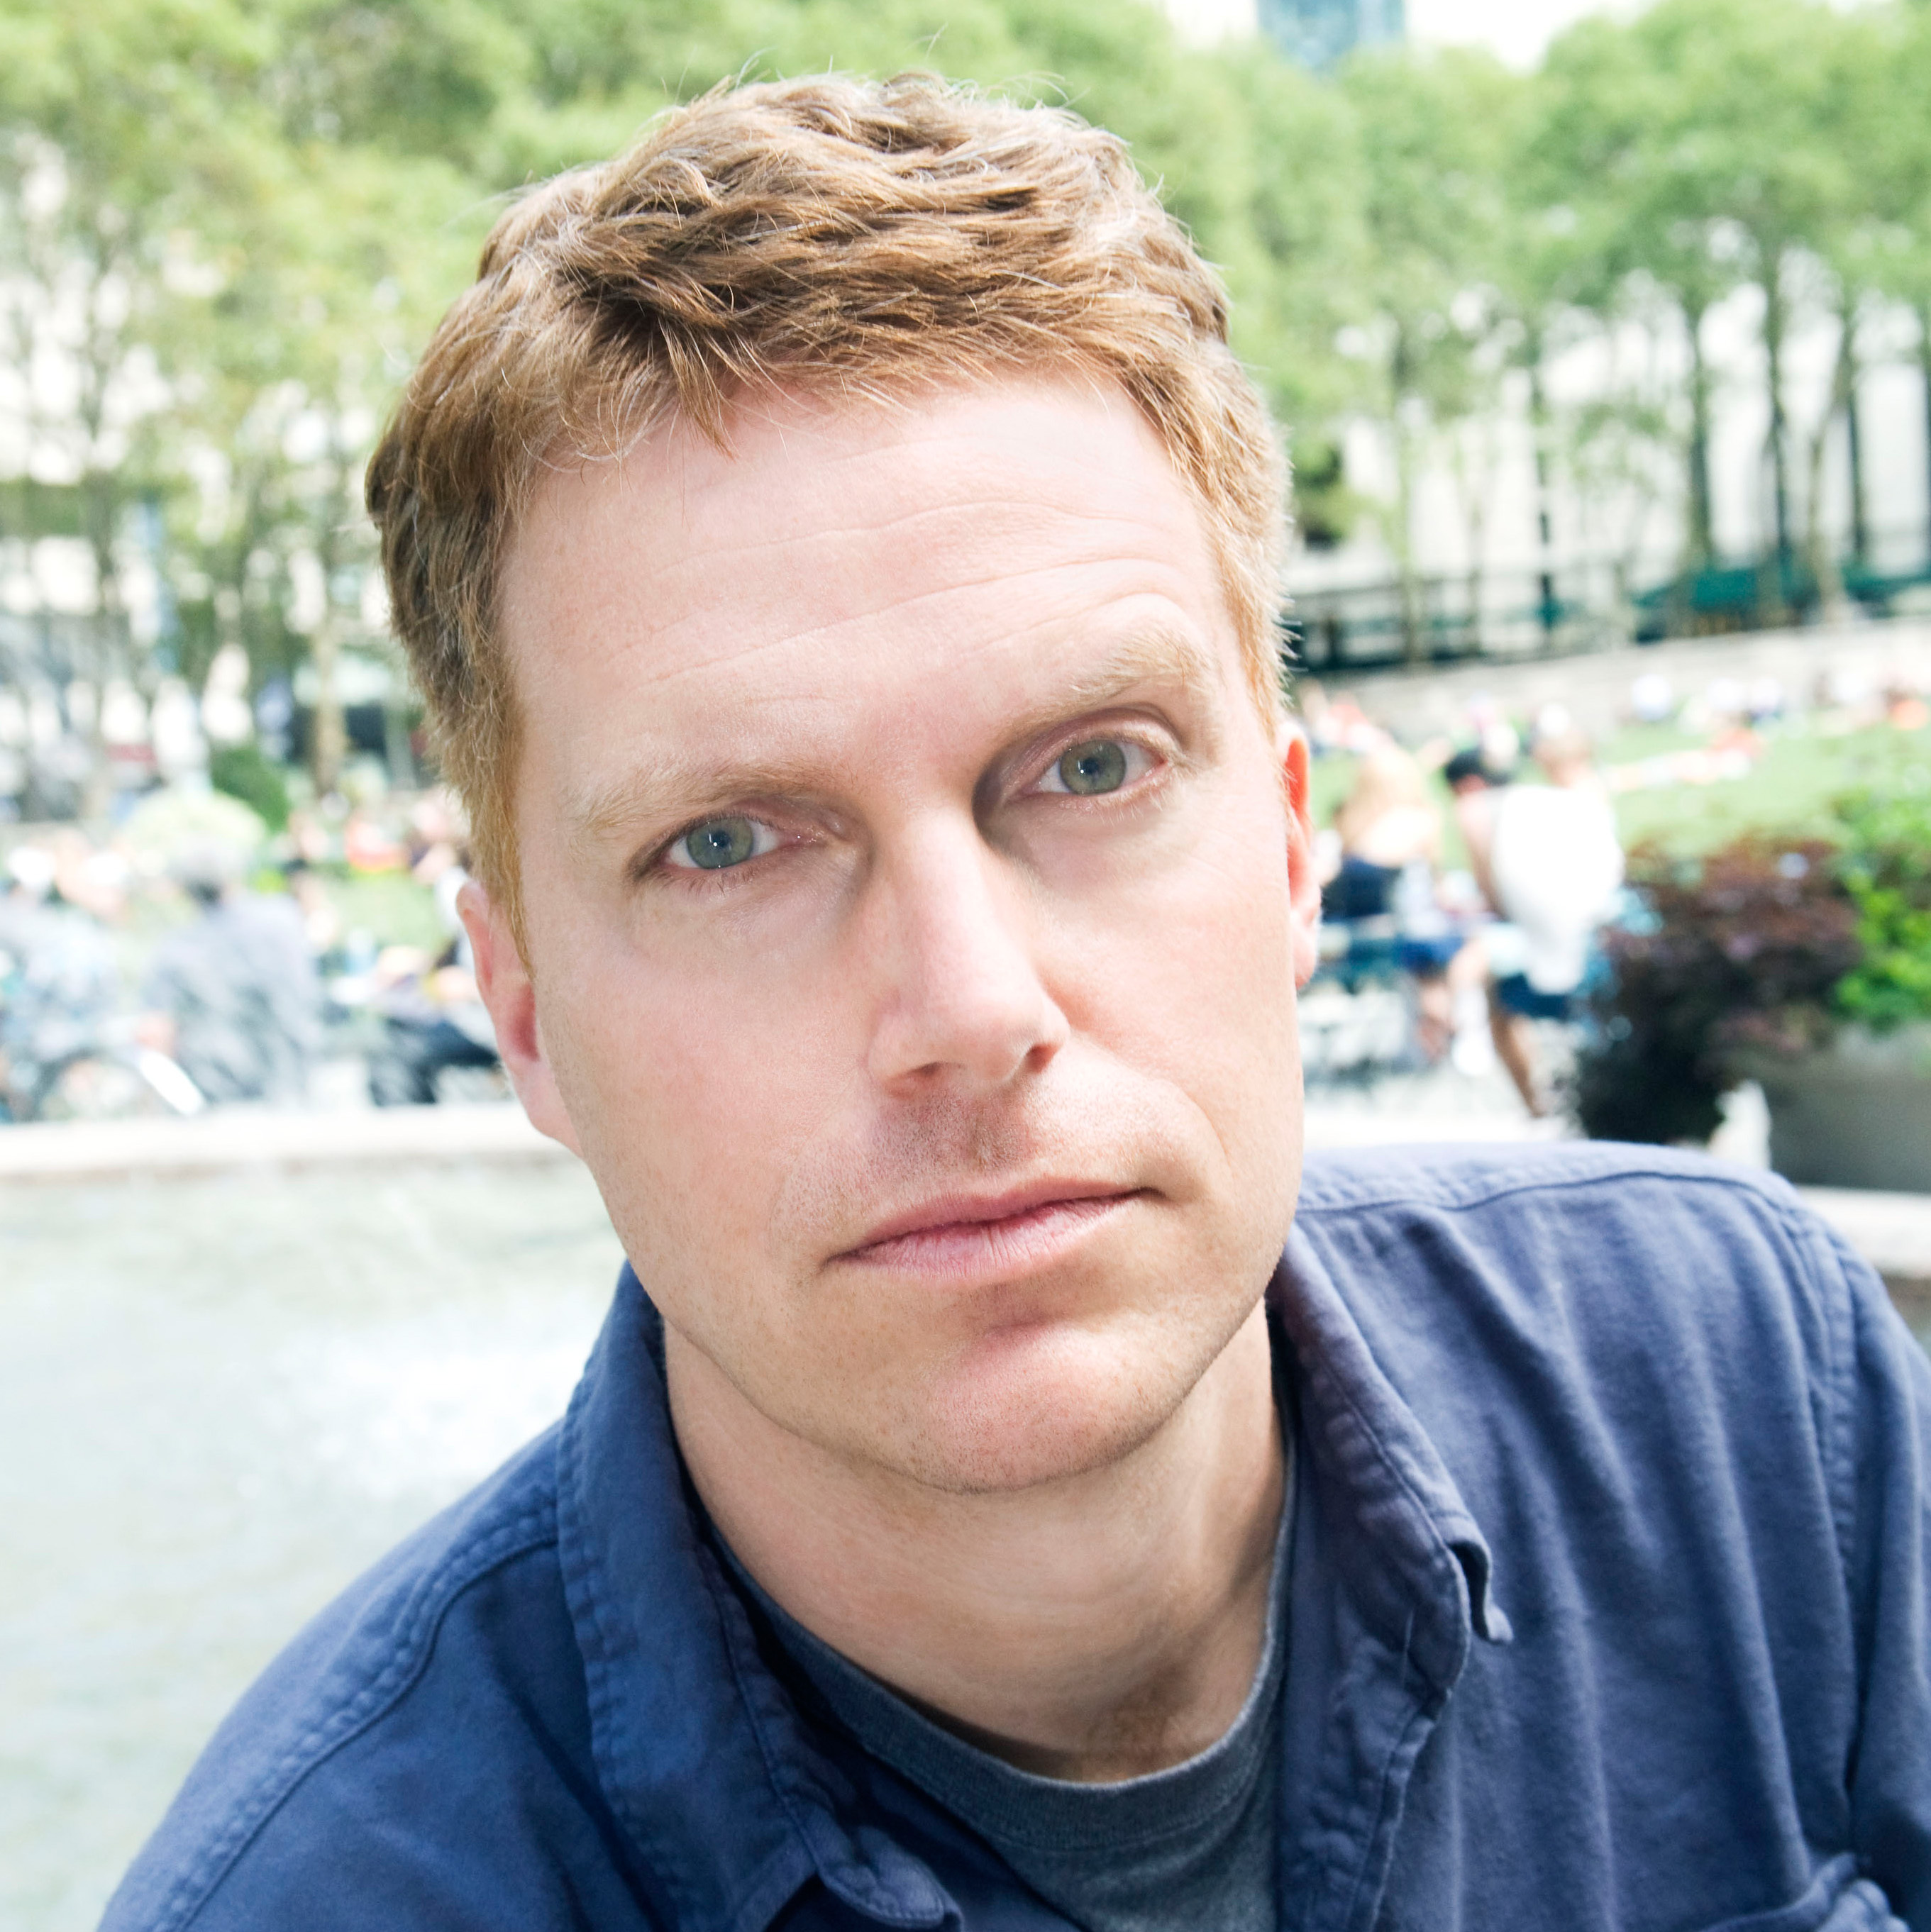 Adam Sternbergh is the culture editor of The New York Times Magazine.